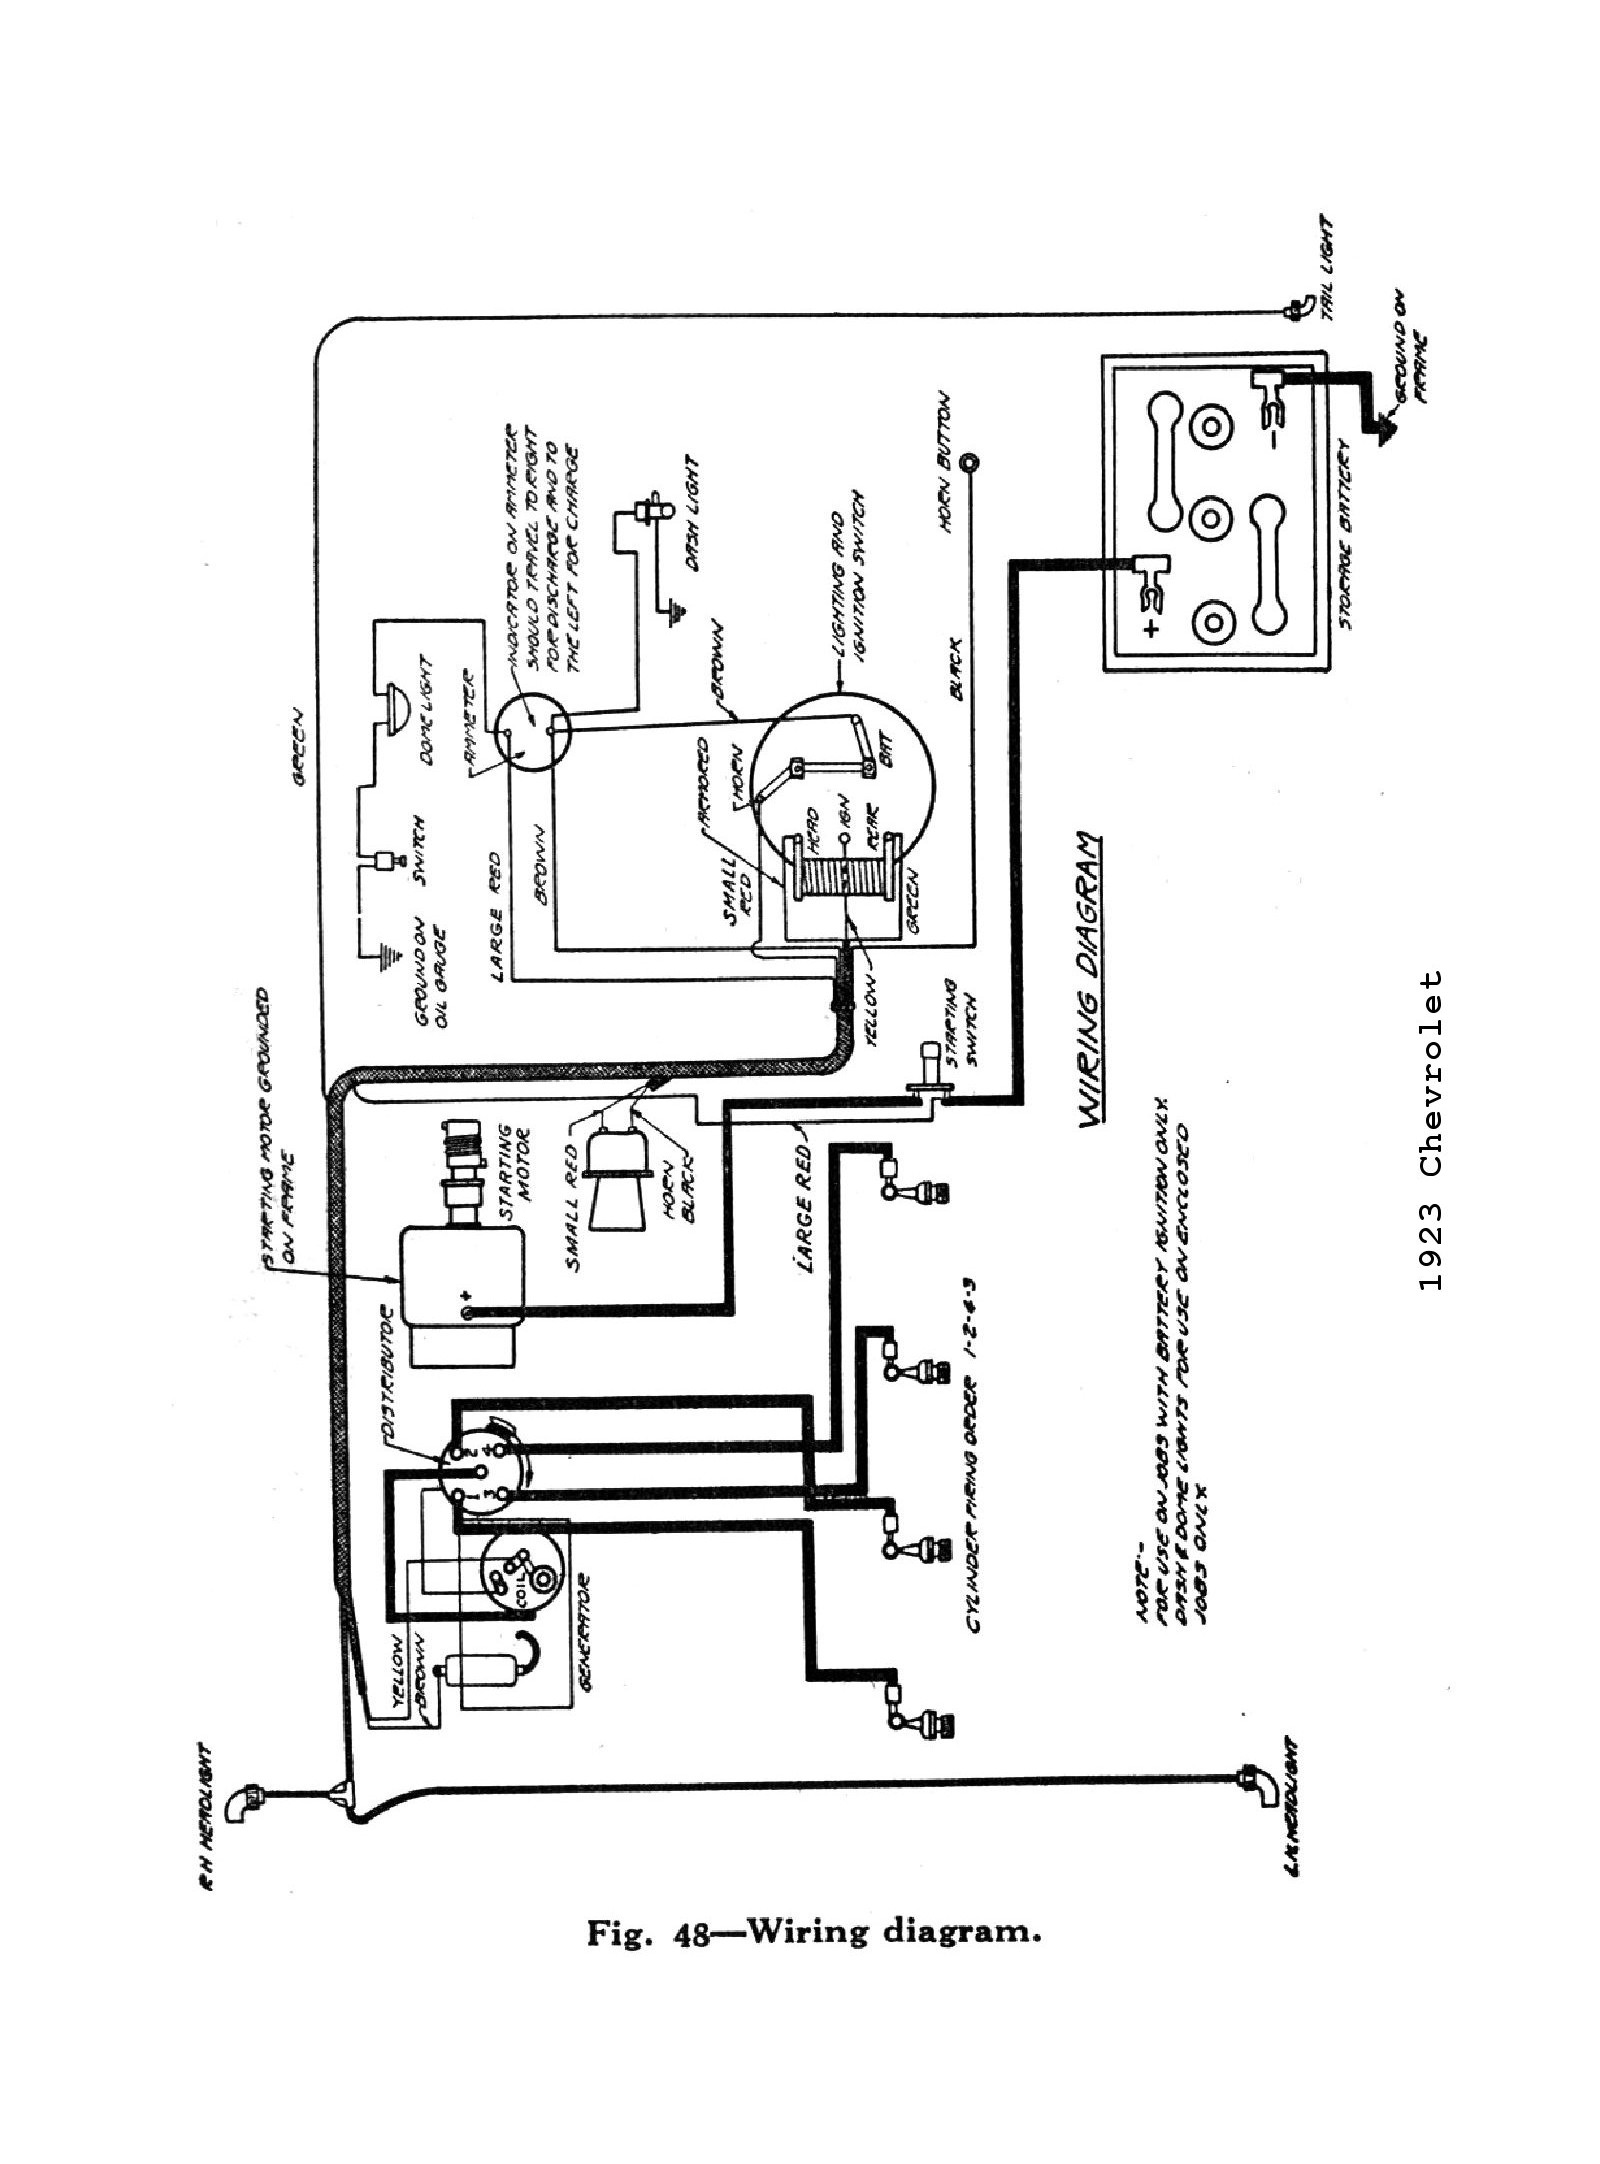 Chevy Wiring Diagrams Wiring Schematics General Wiring Diagram